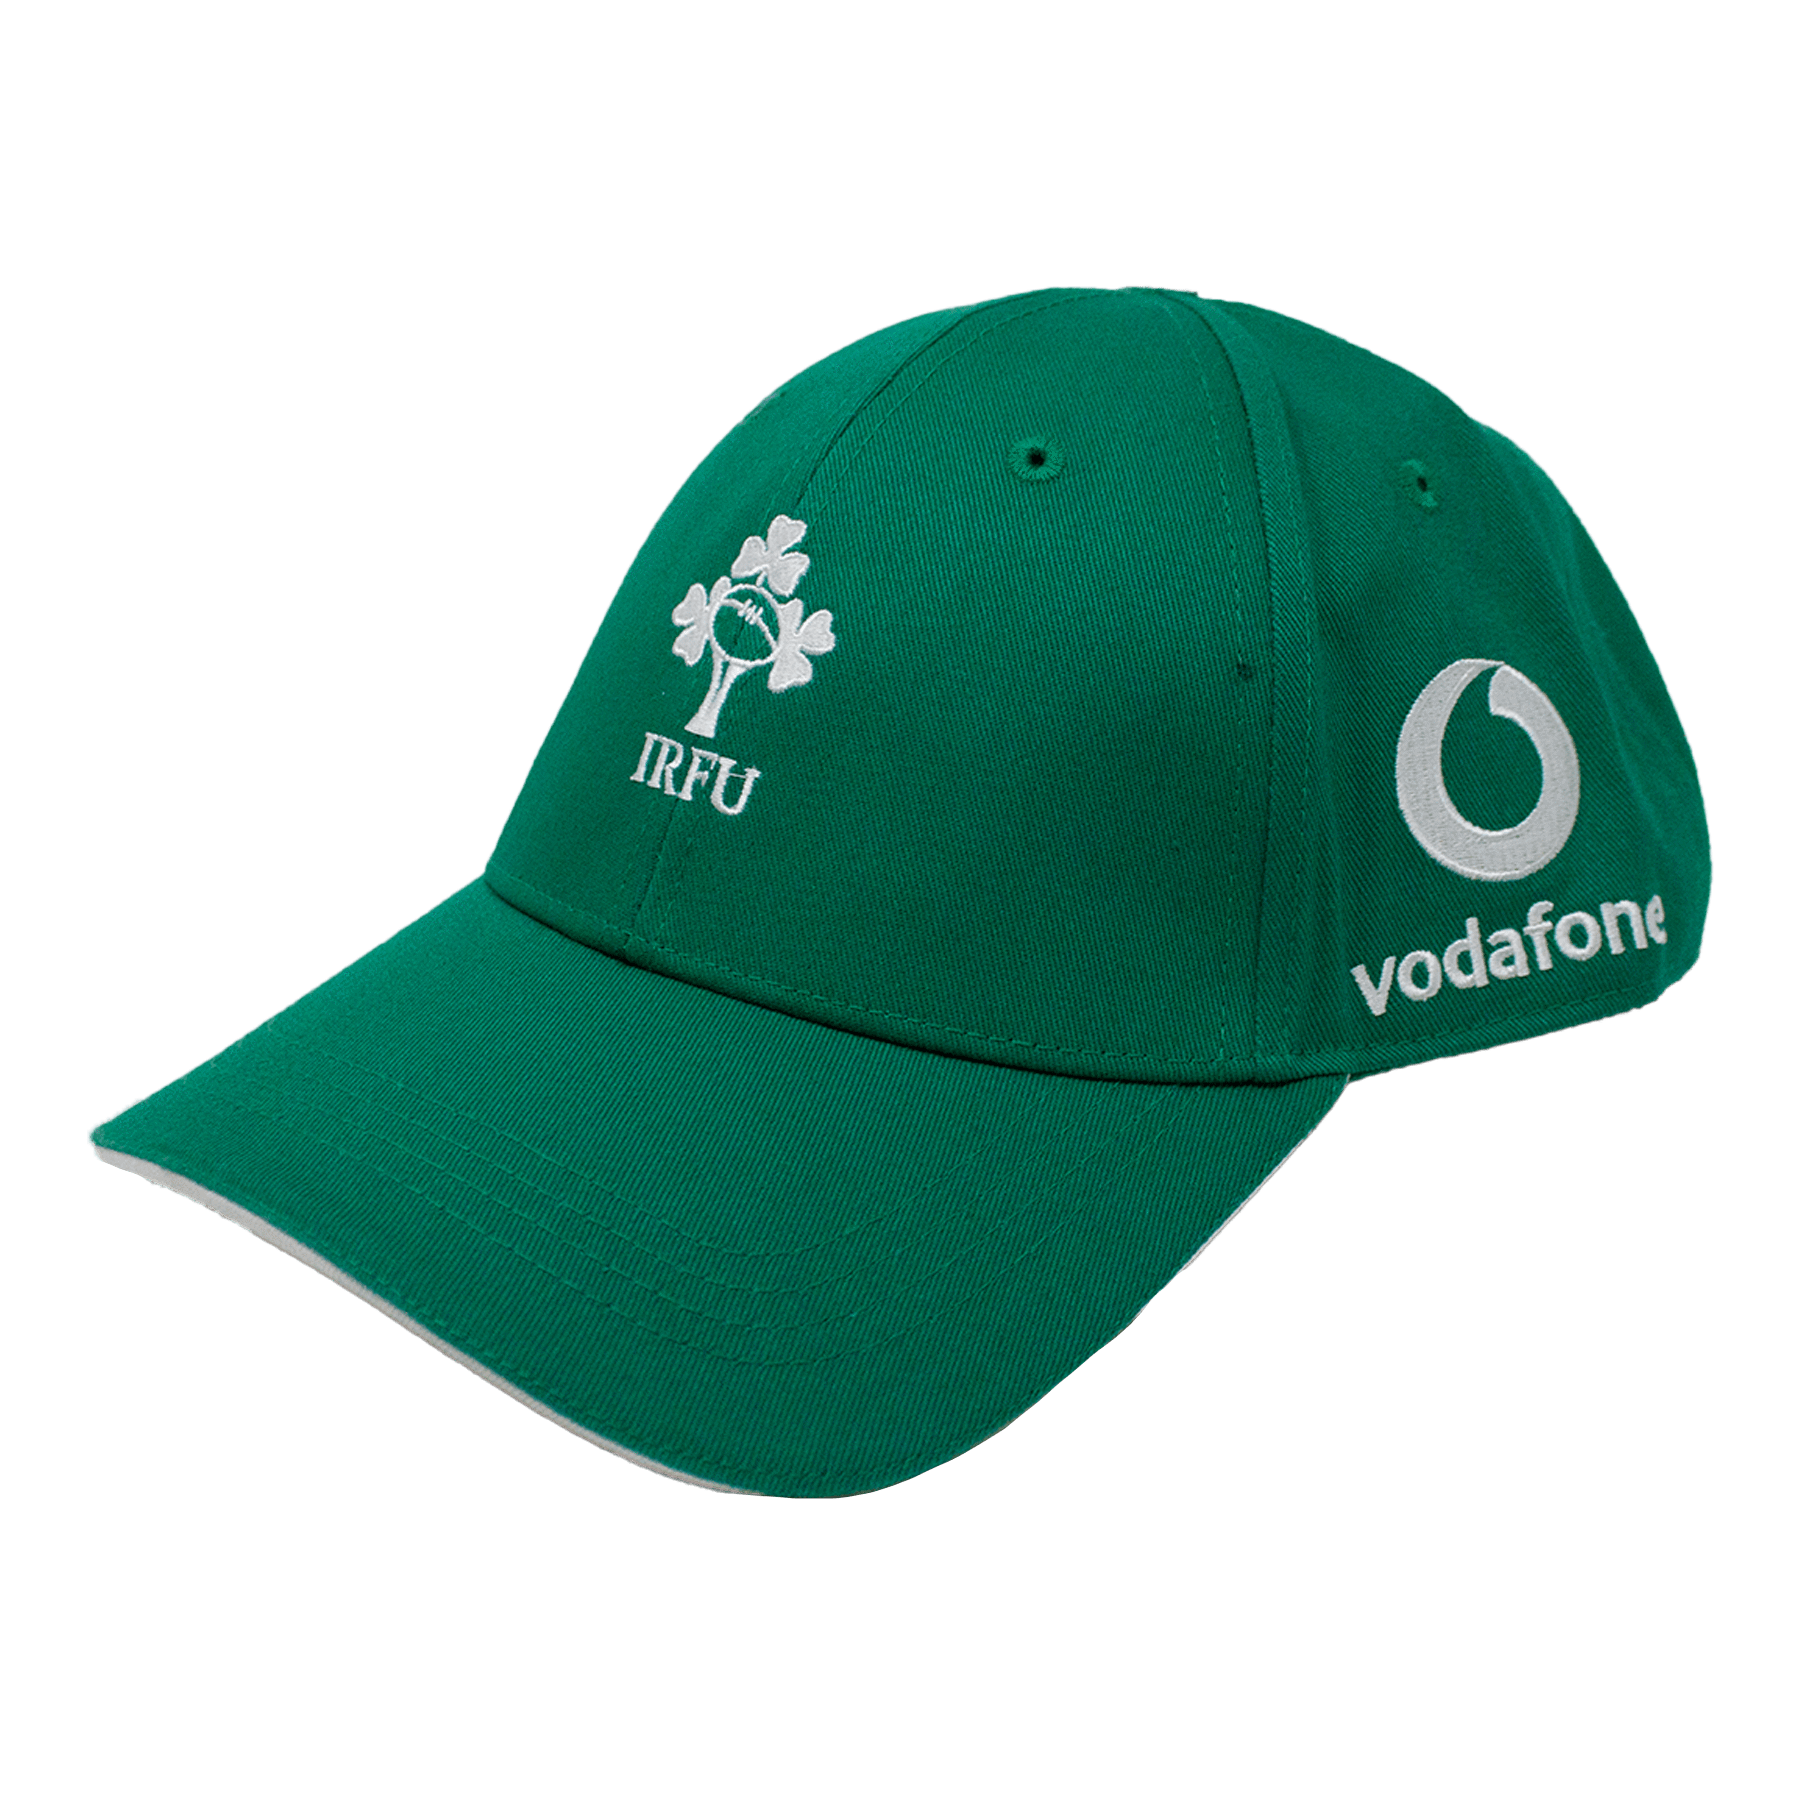 Rugby Nations Baseball Cap